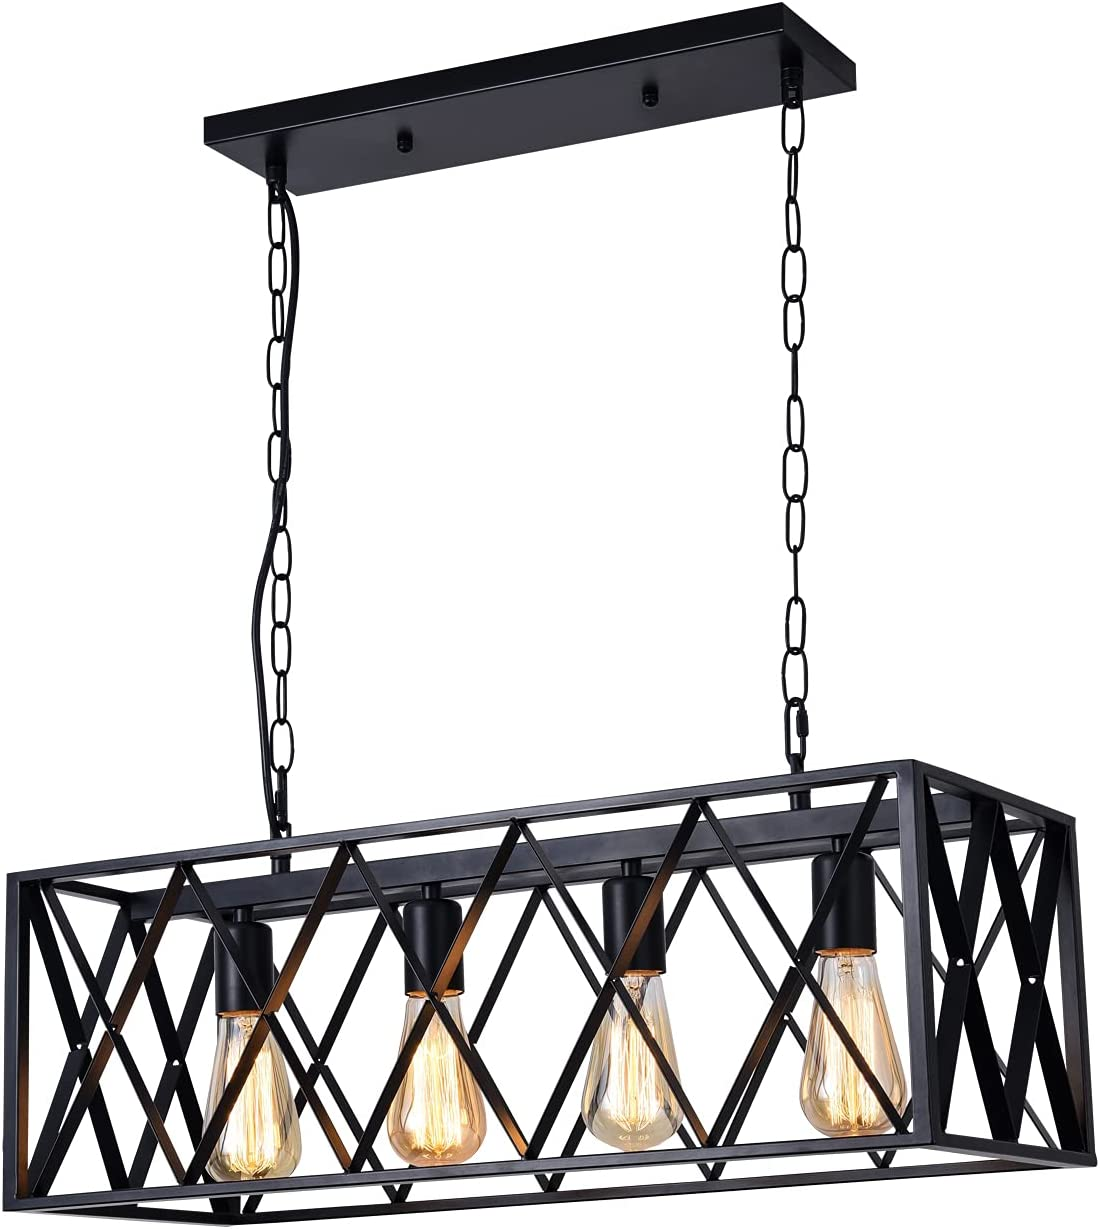 Spring new work one after another Island Pendant-Lighting Industrial Kitchen KUANGYE R New product Chandelier: